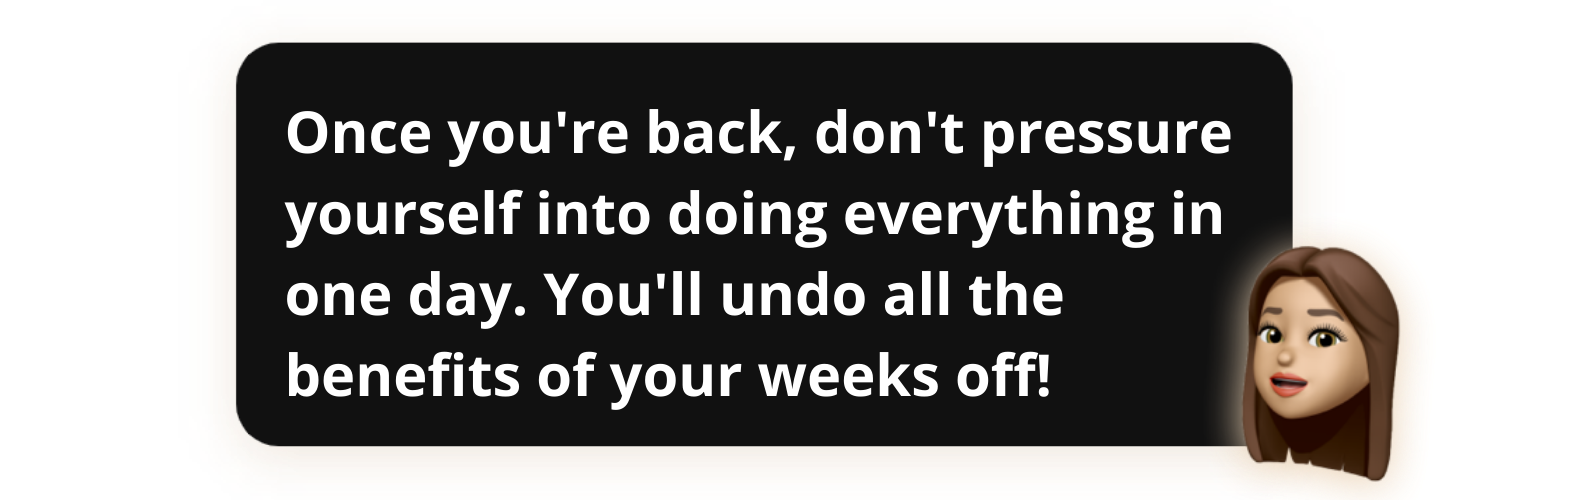 Once you're back, don't pressure yourself into doing everything in one day. You'll undo all the benefits of your weeks off! - Popwork